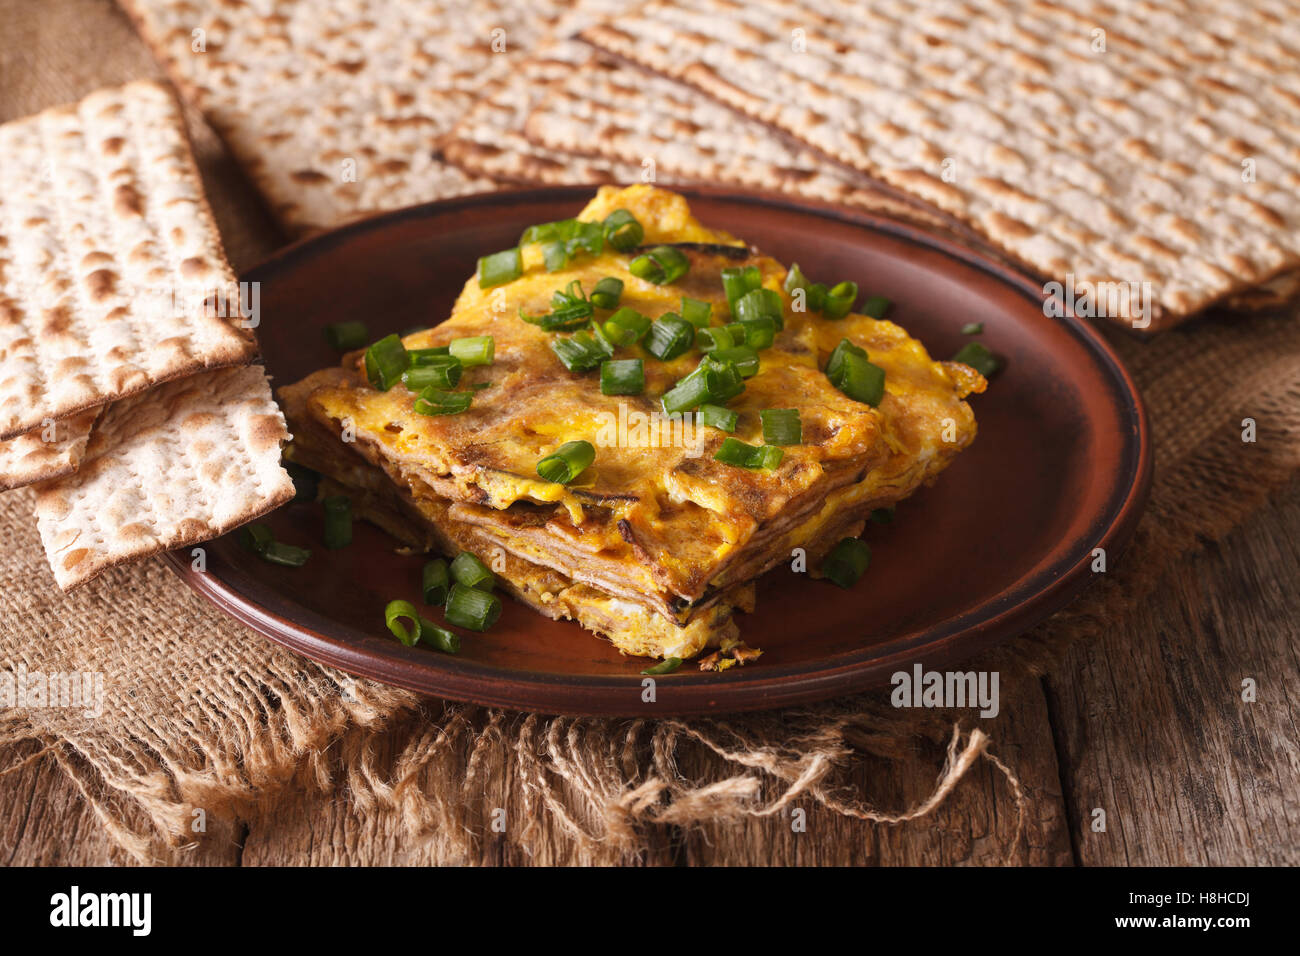 Jewish omelette: matzah brei with green onions close-up on a plate. horizontal - Stock Image